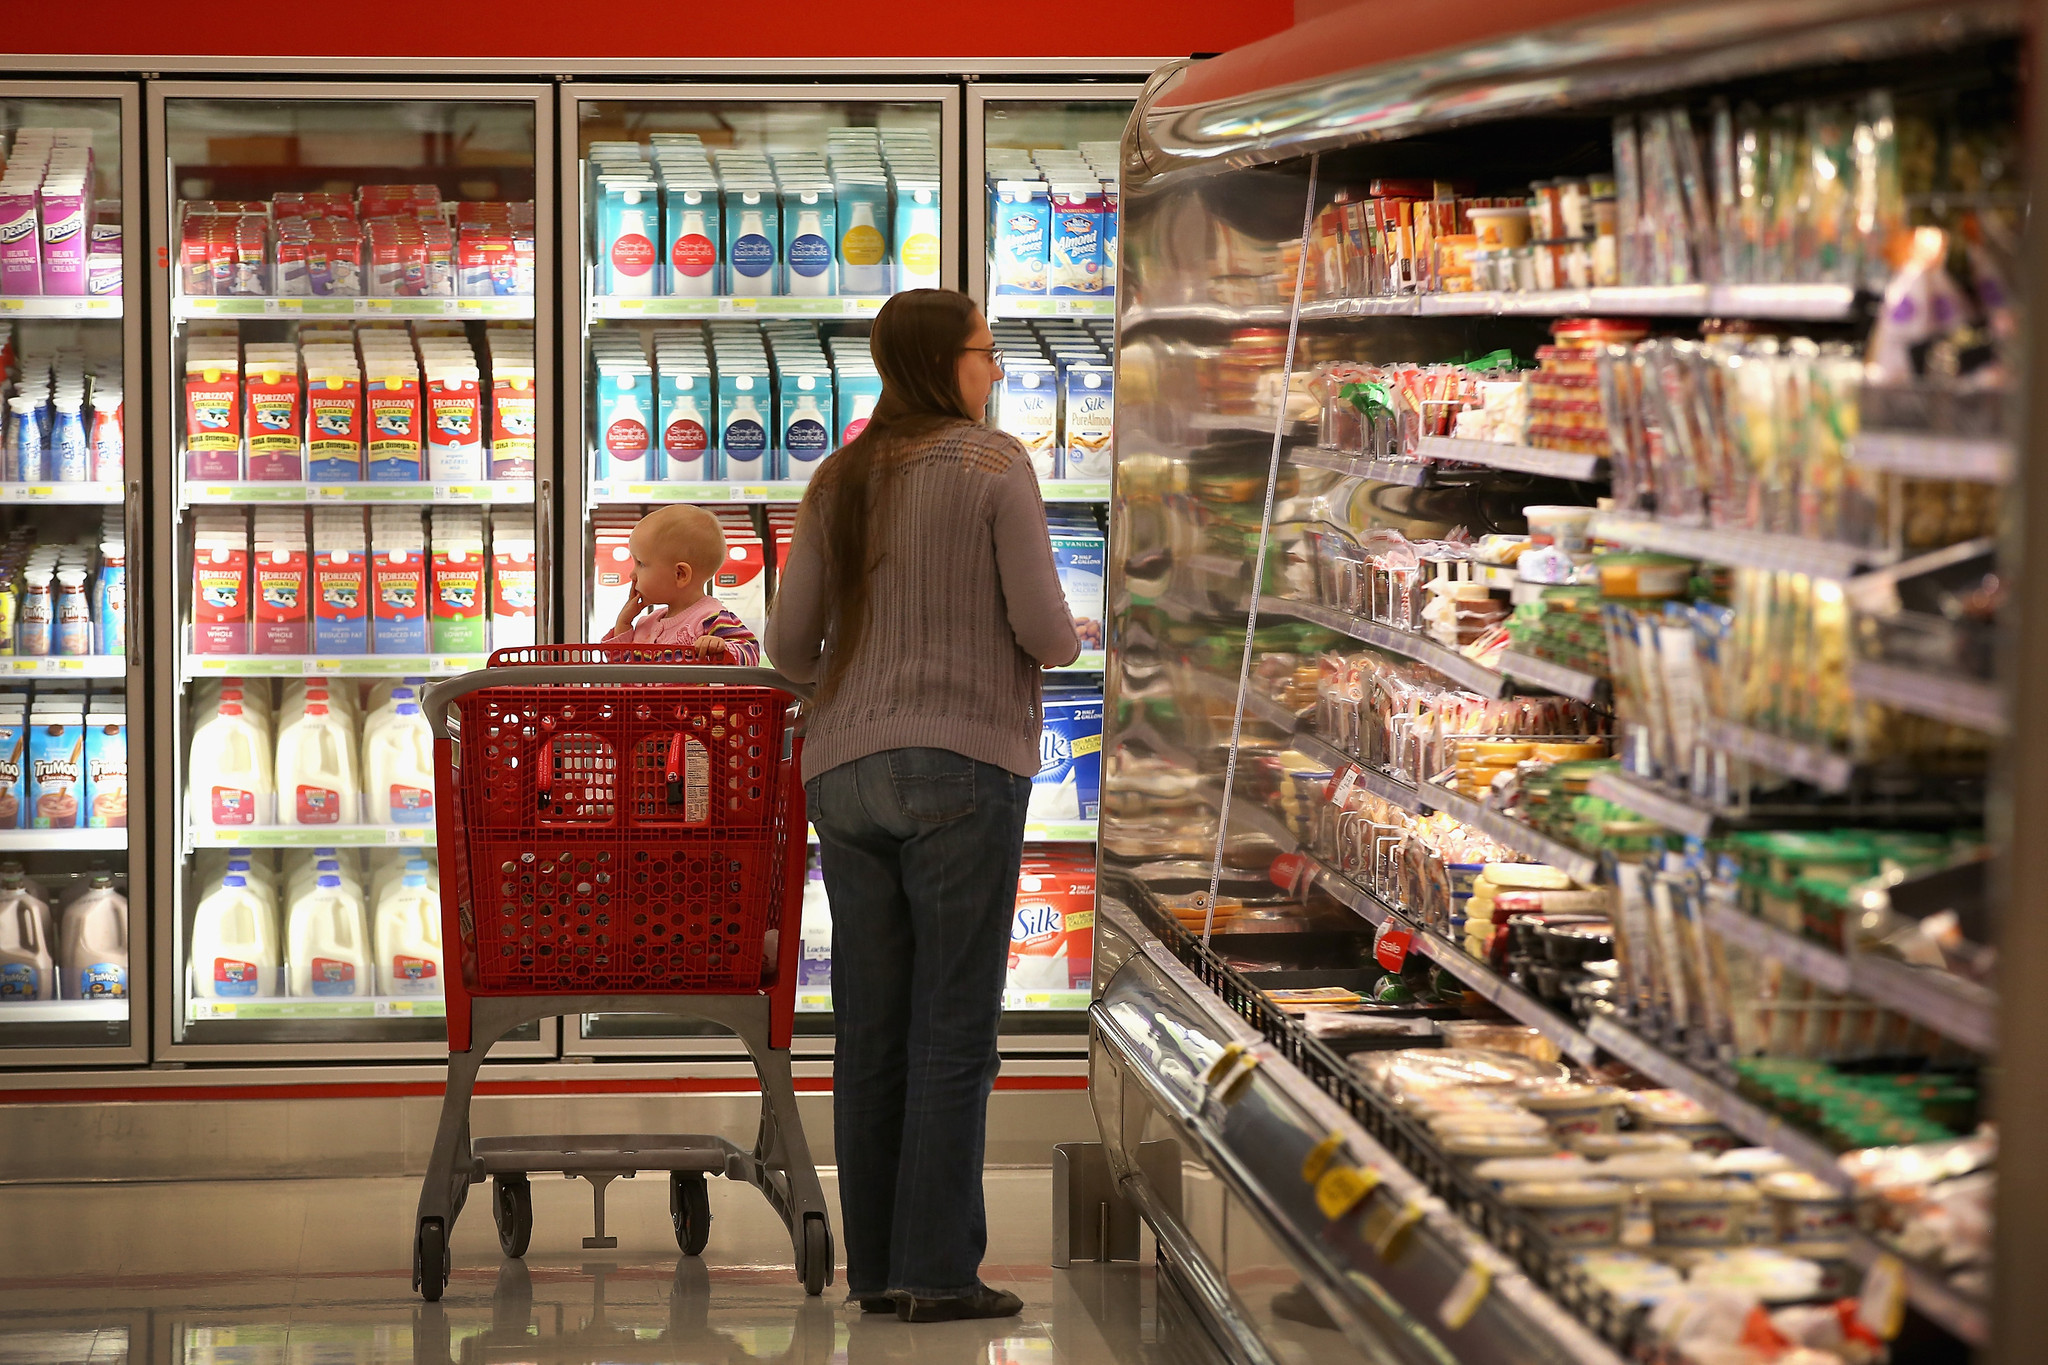 Target is making a big shift away from packaged to fresh foods